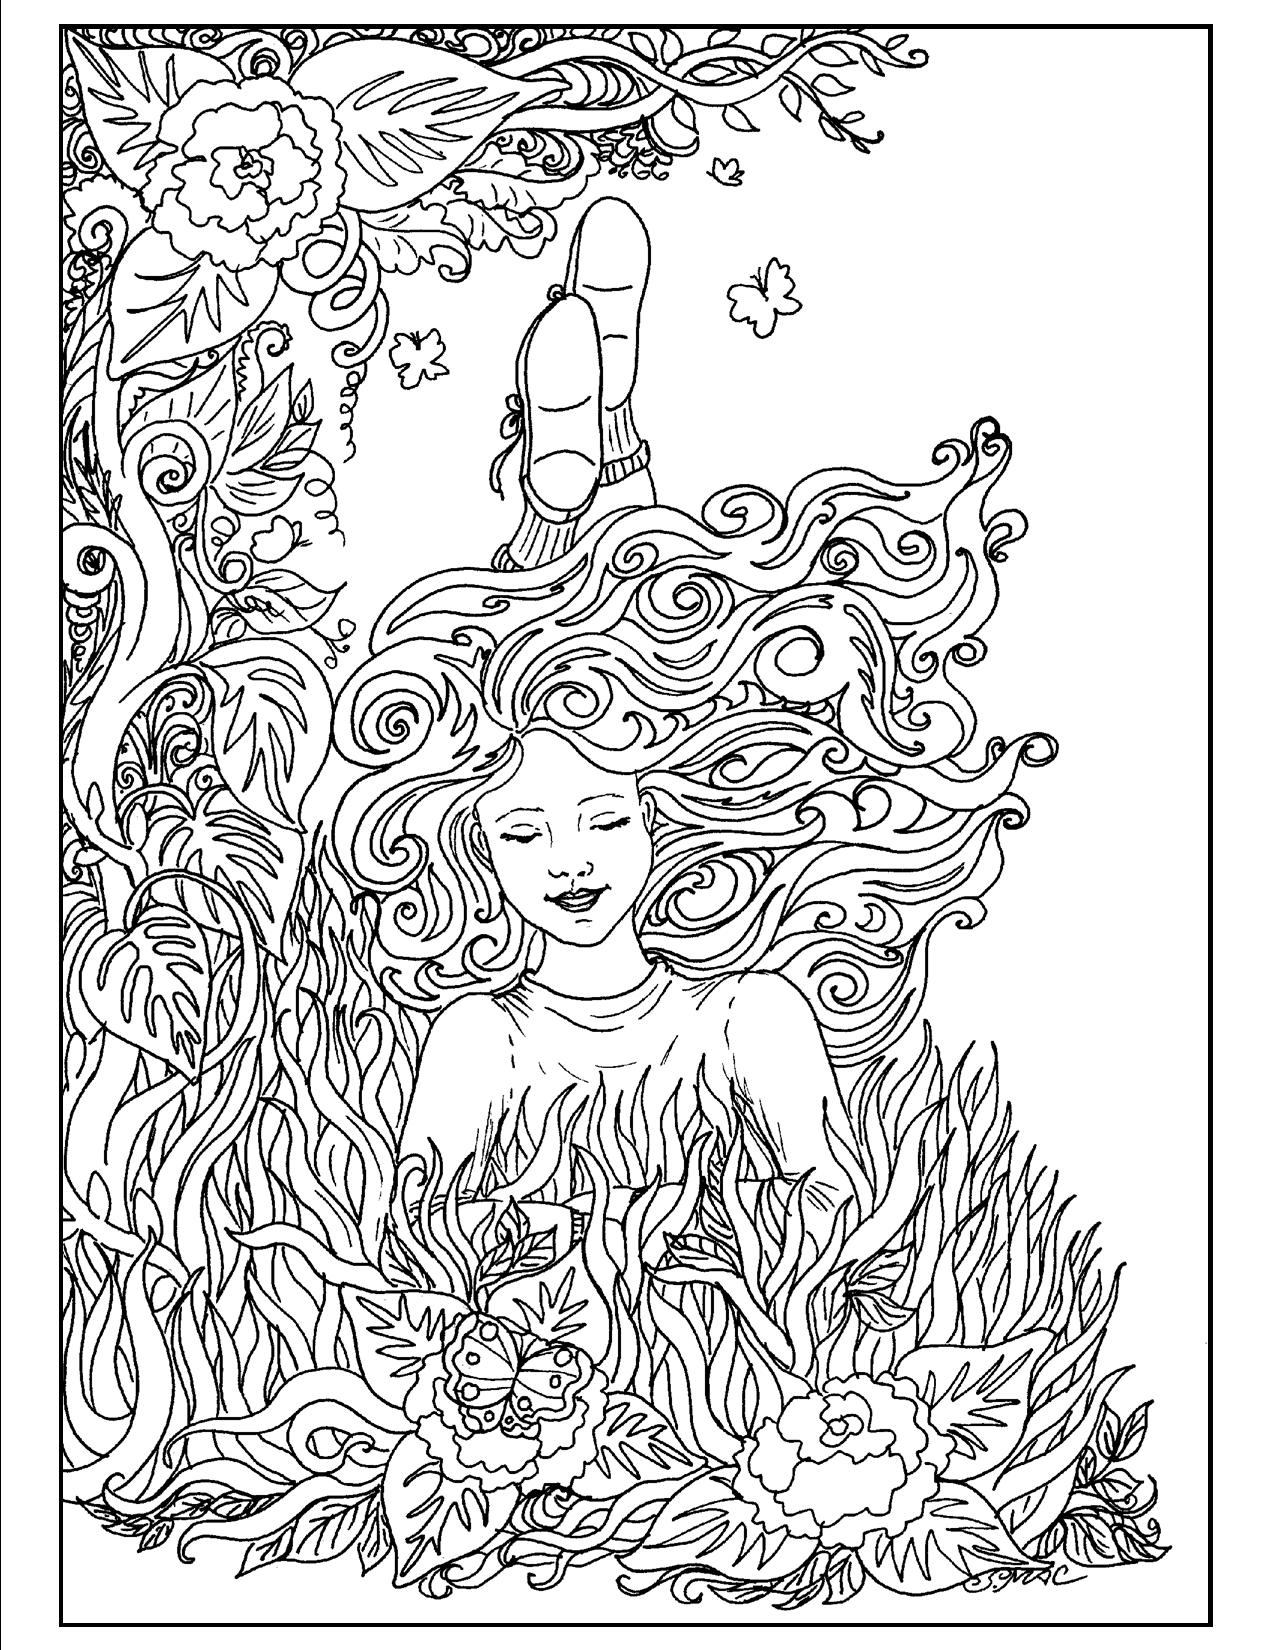 Art Nouveau Coloring Pages - Coloring Home